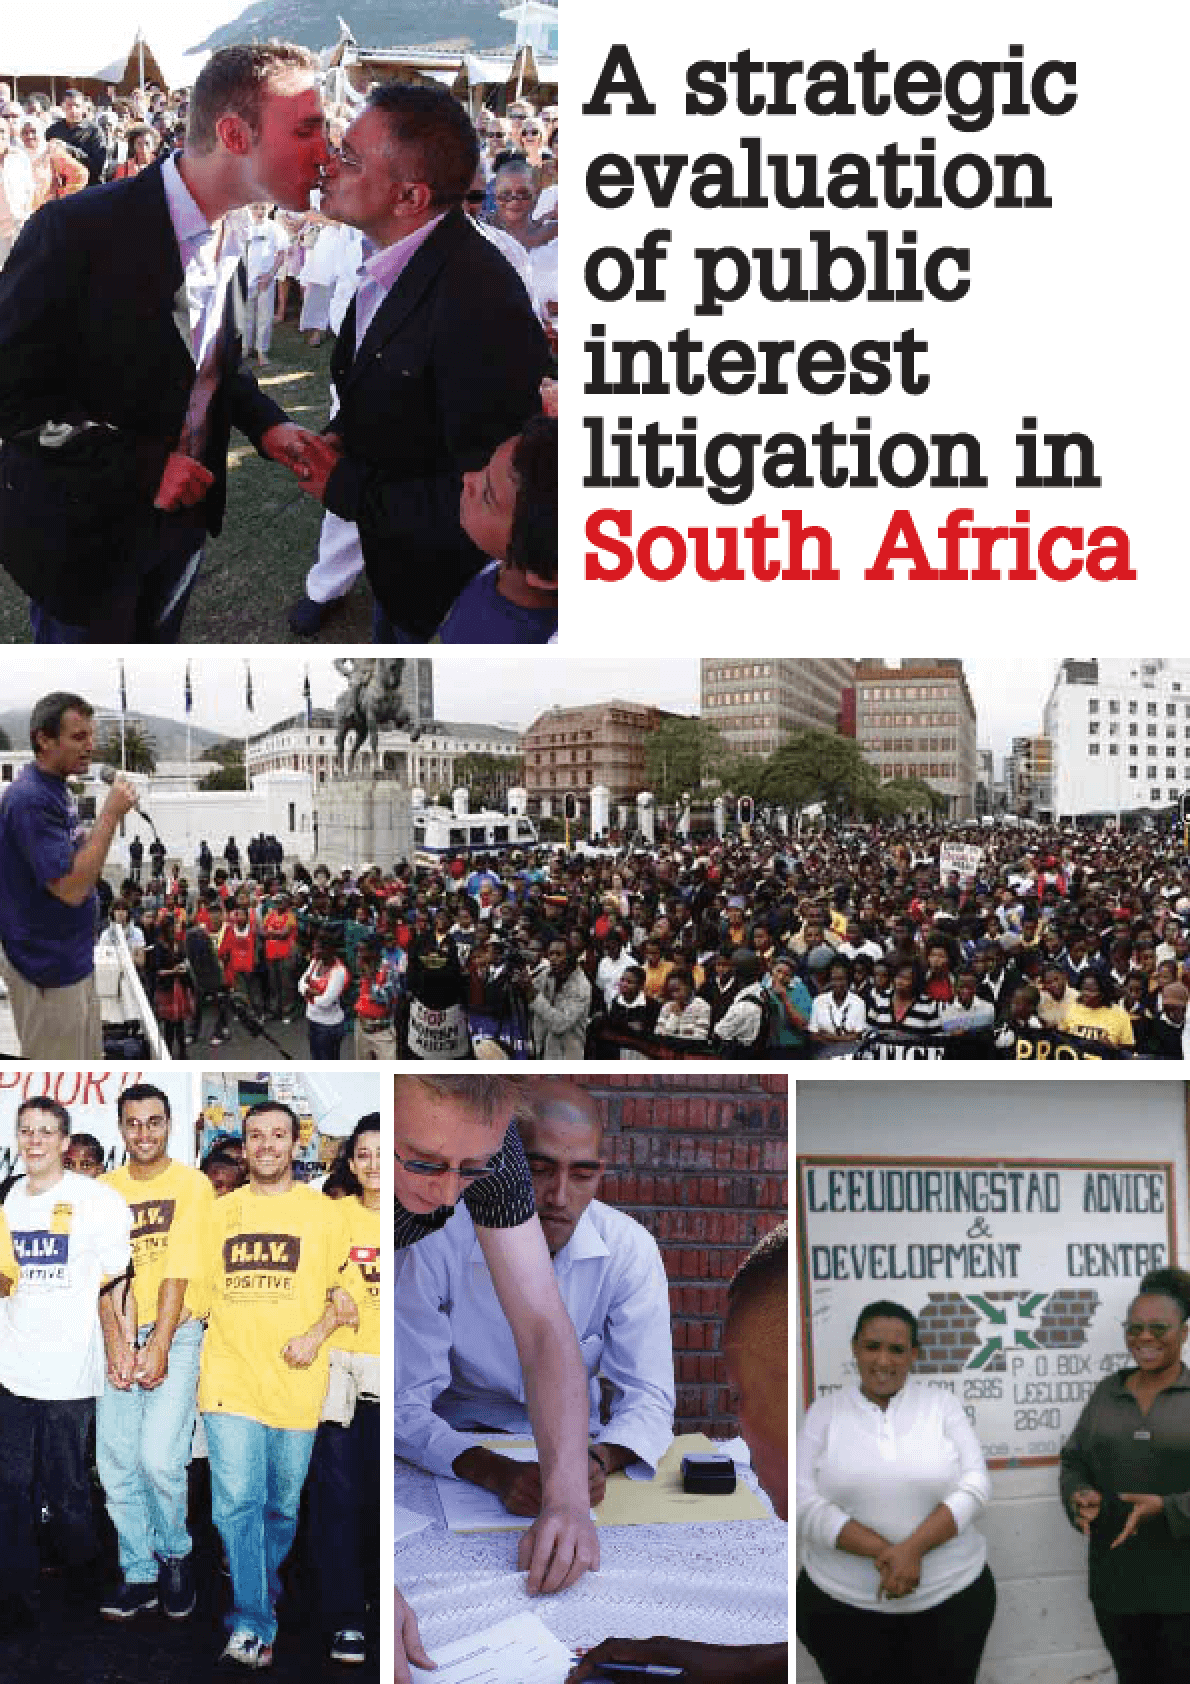 A Strategic Evaluation of Public Interest Litigation in South Africa